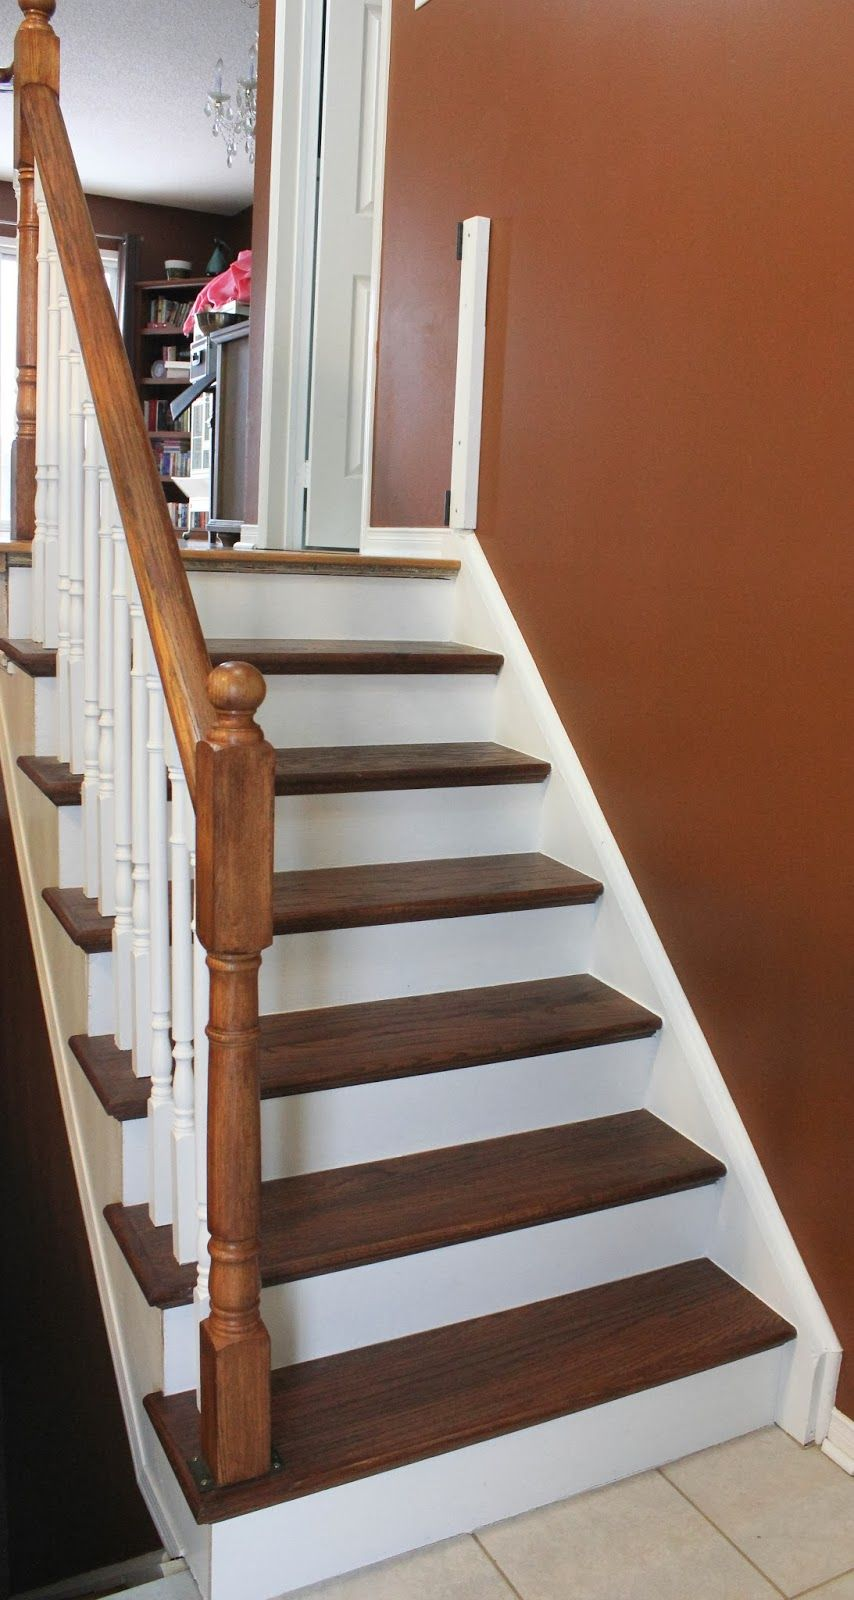 Stairway Remodel Part 4: Painting Spindles, Risers, and ...